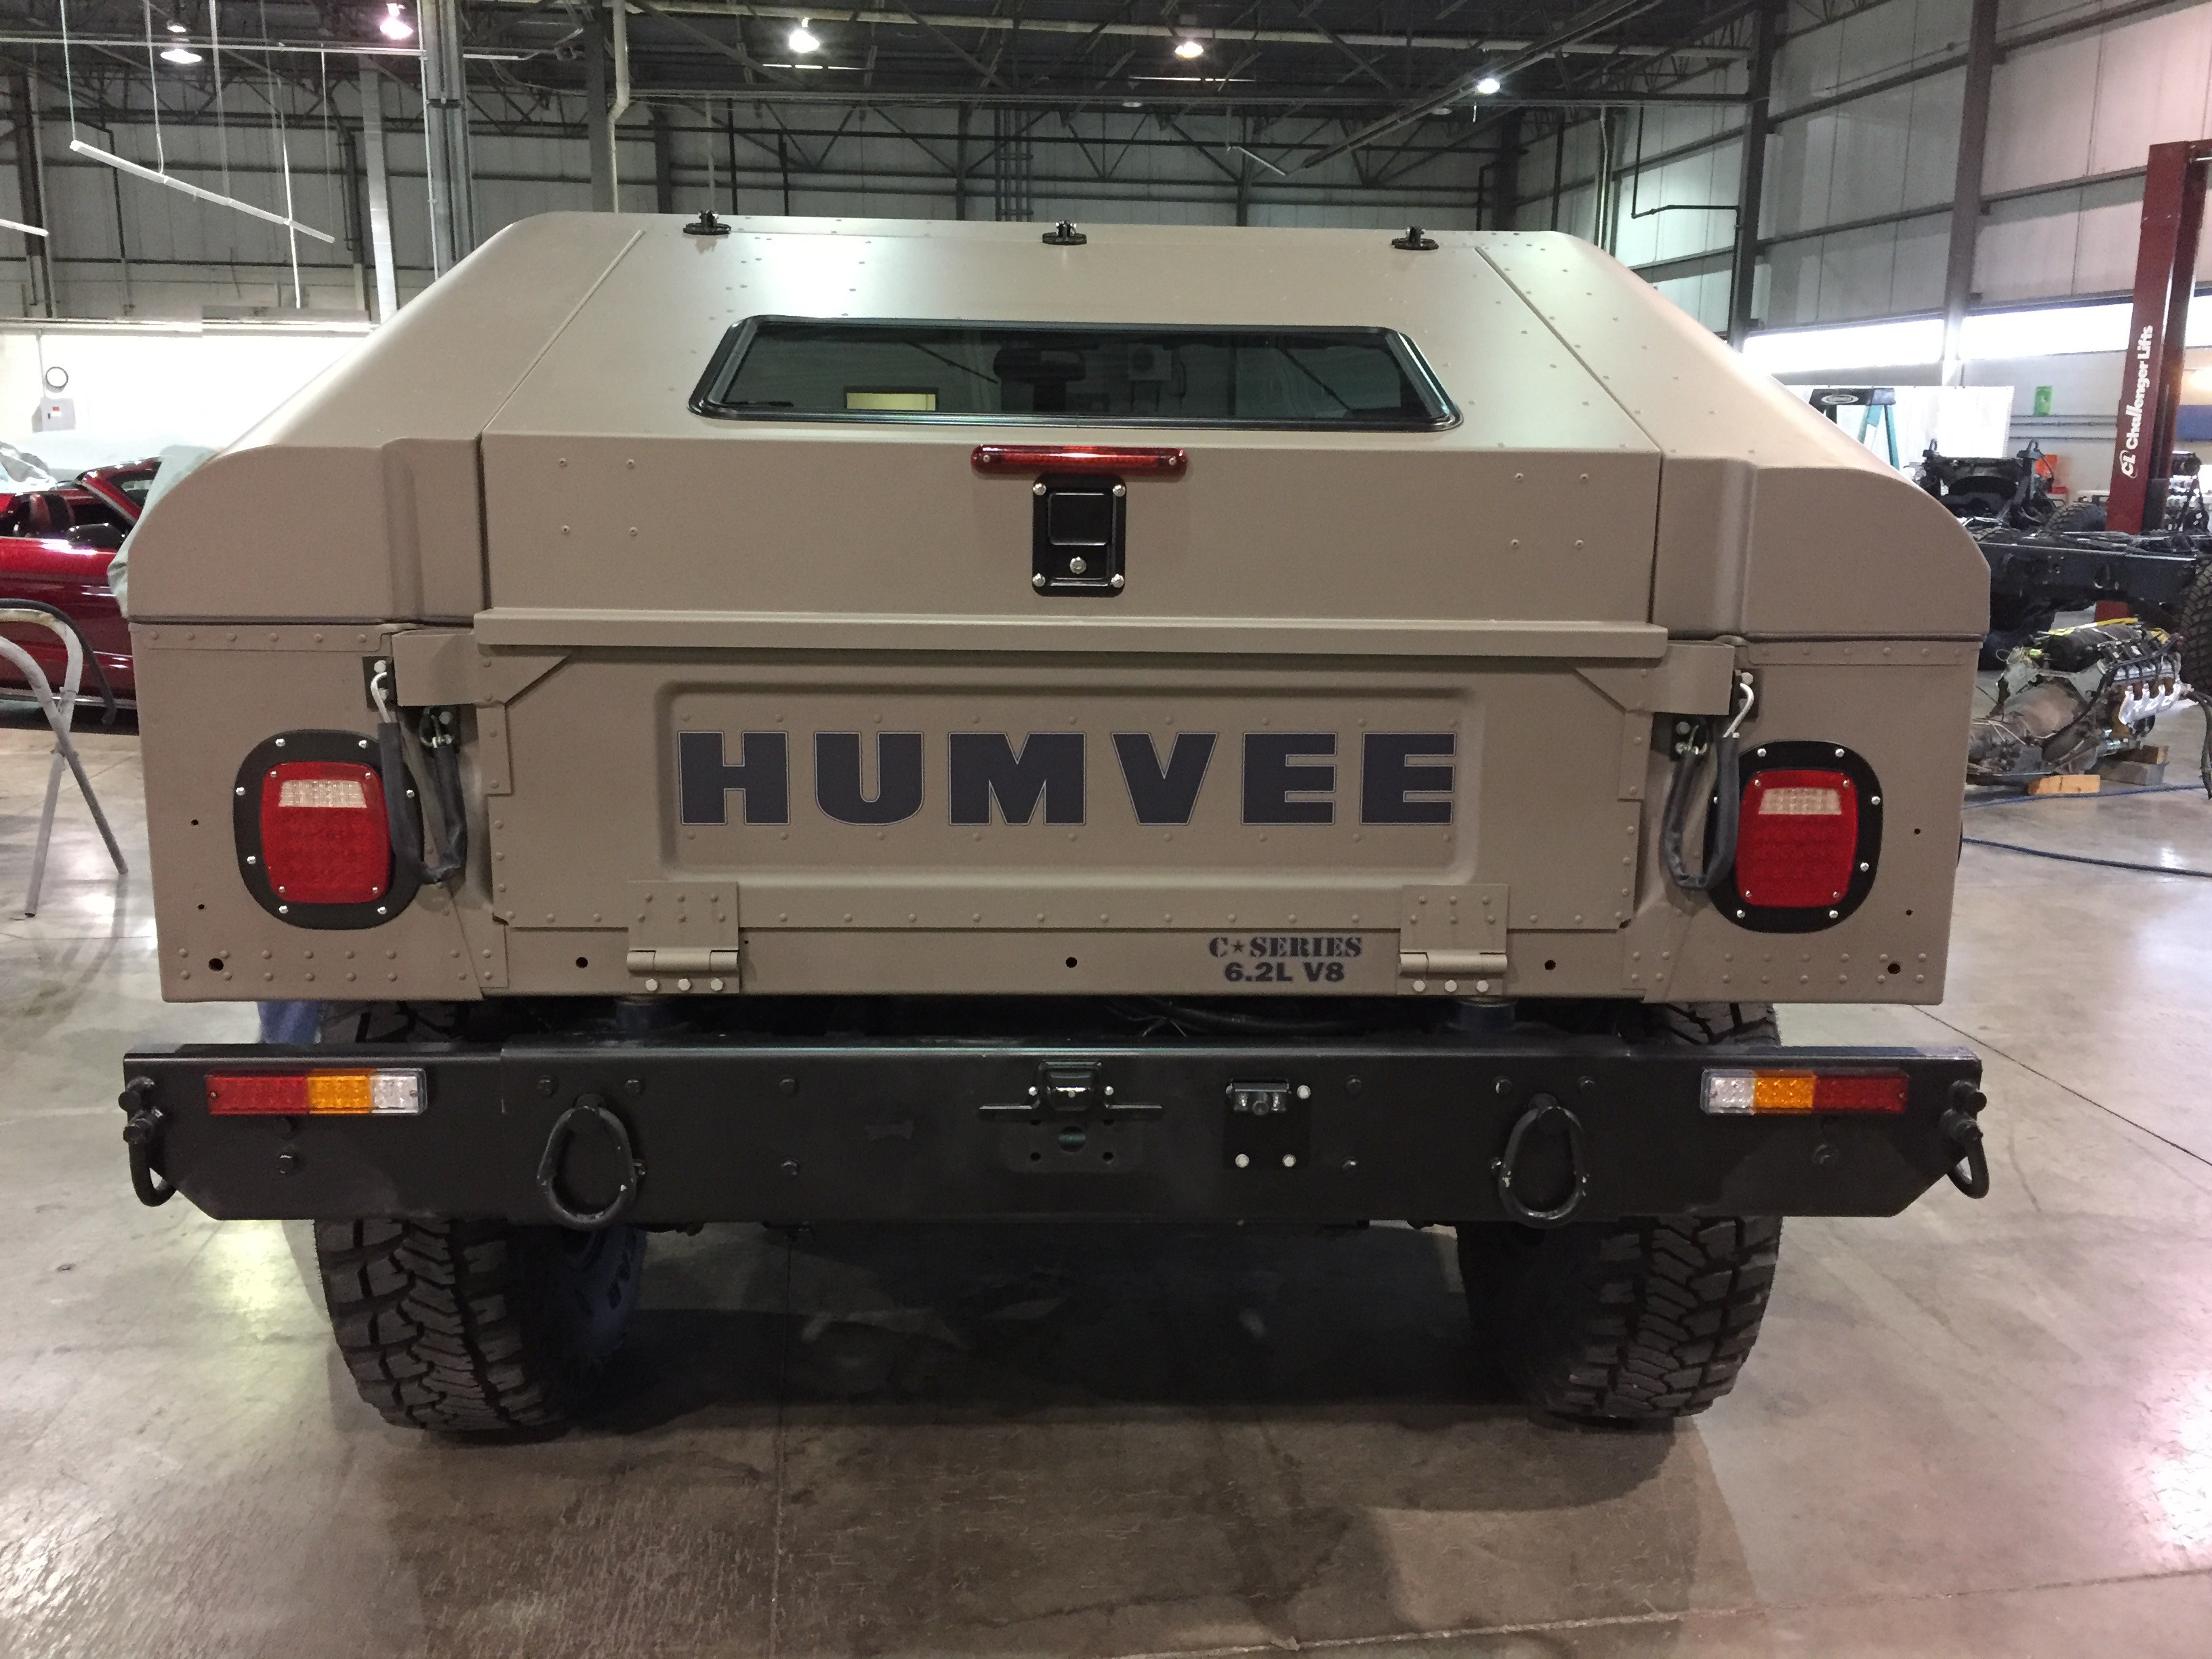 Hummer Prices in China Boom - autoevolution